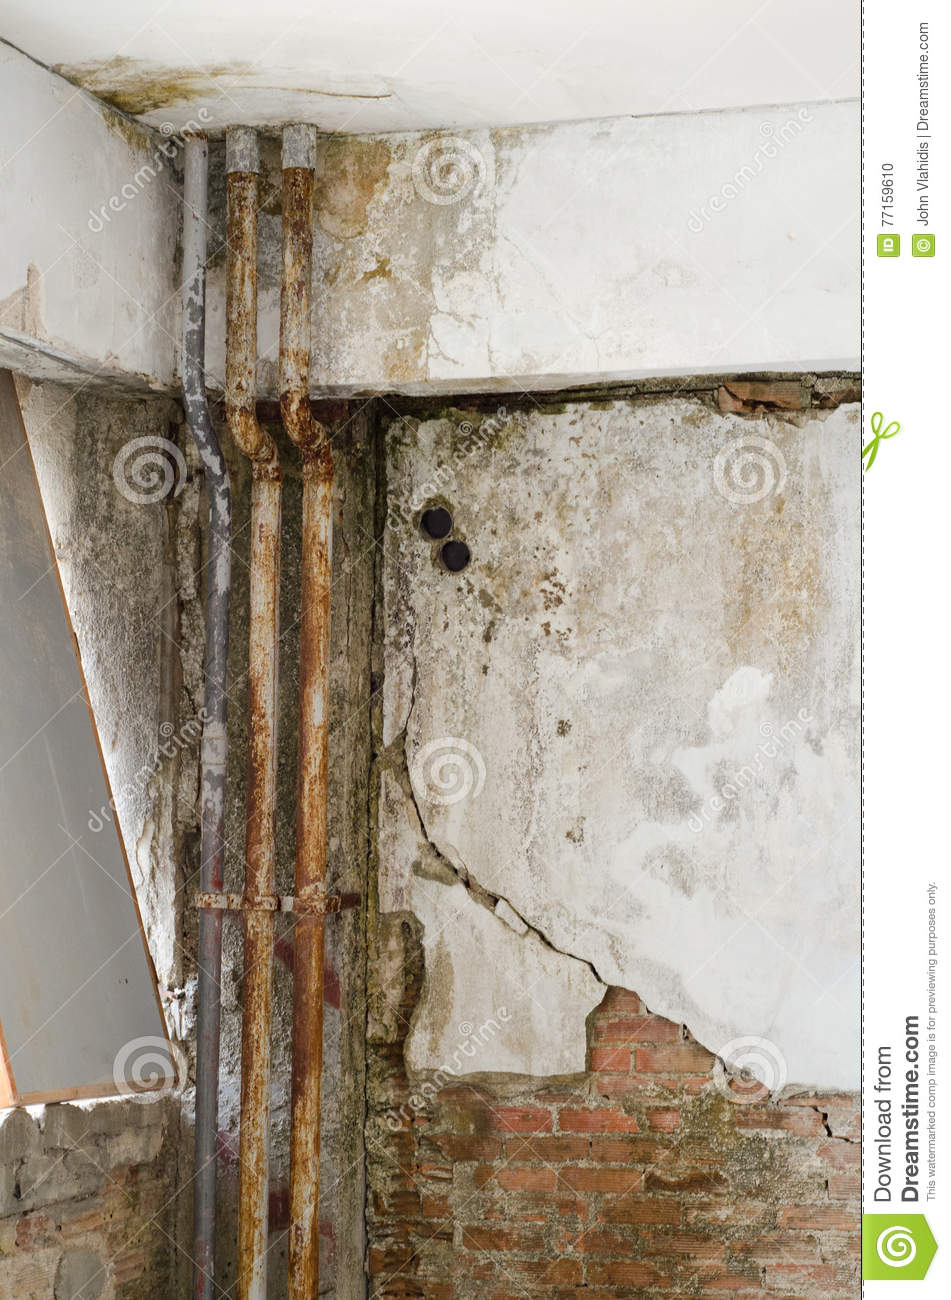 Rust in pipes